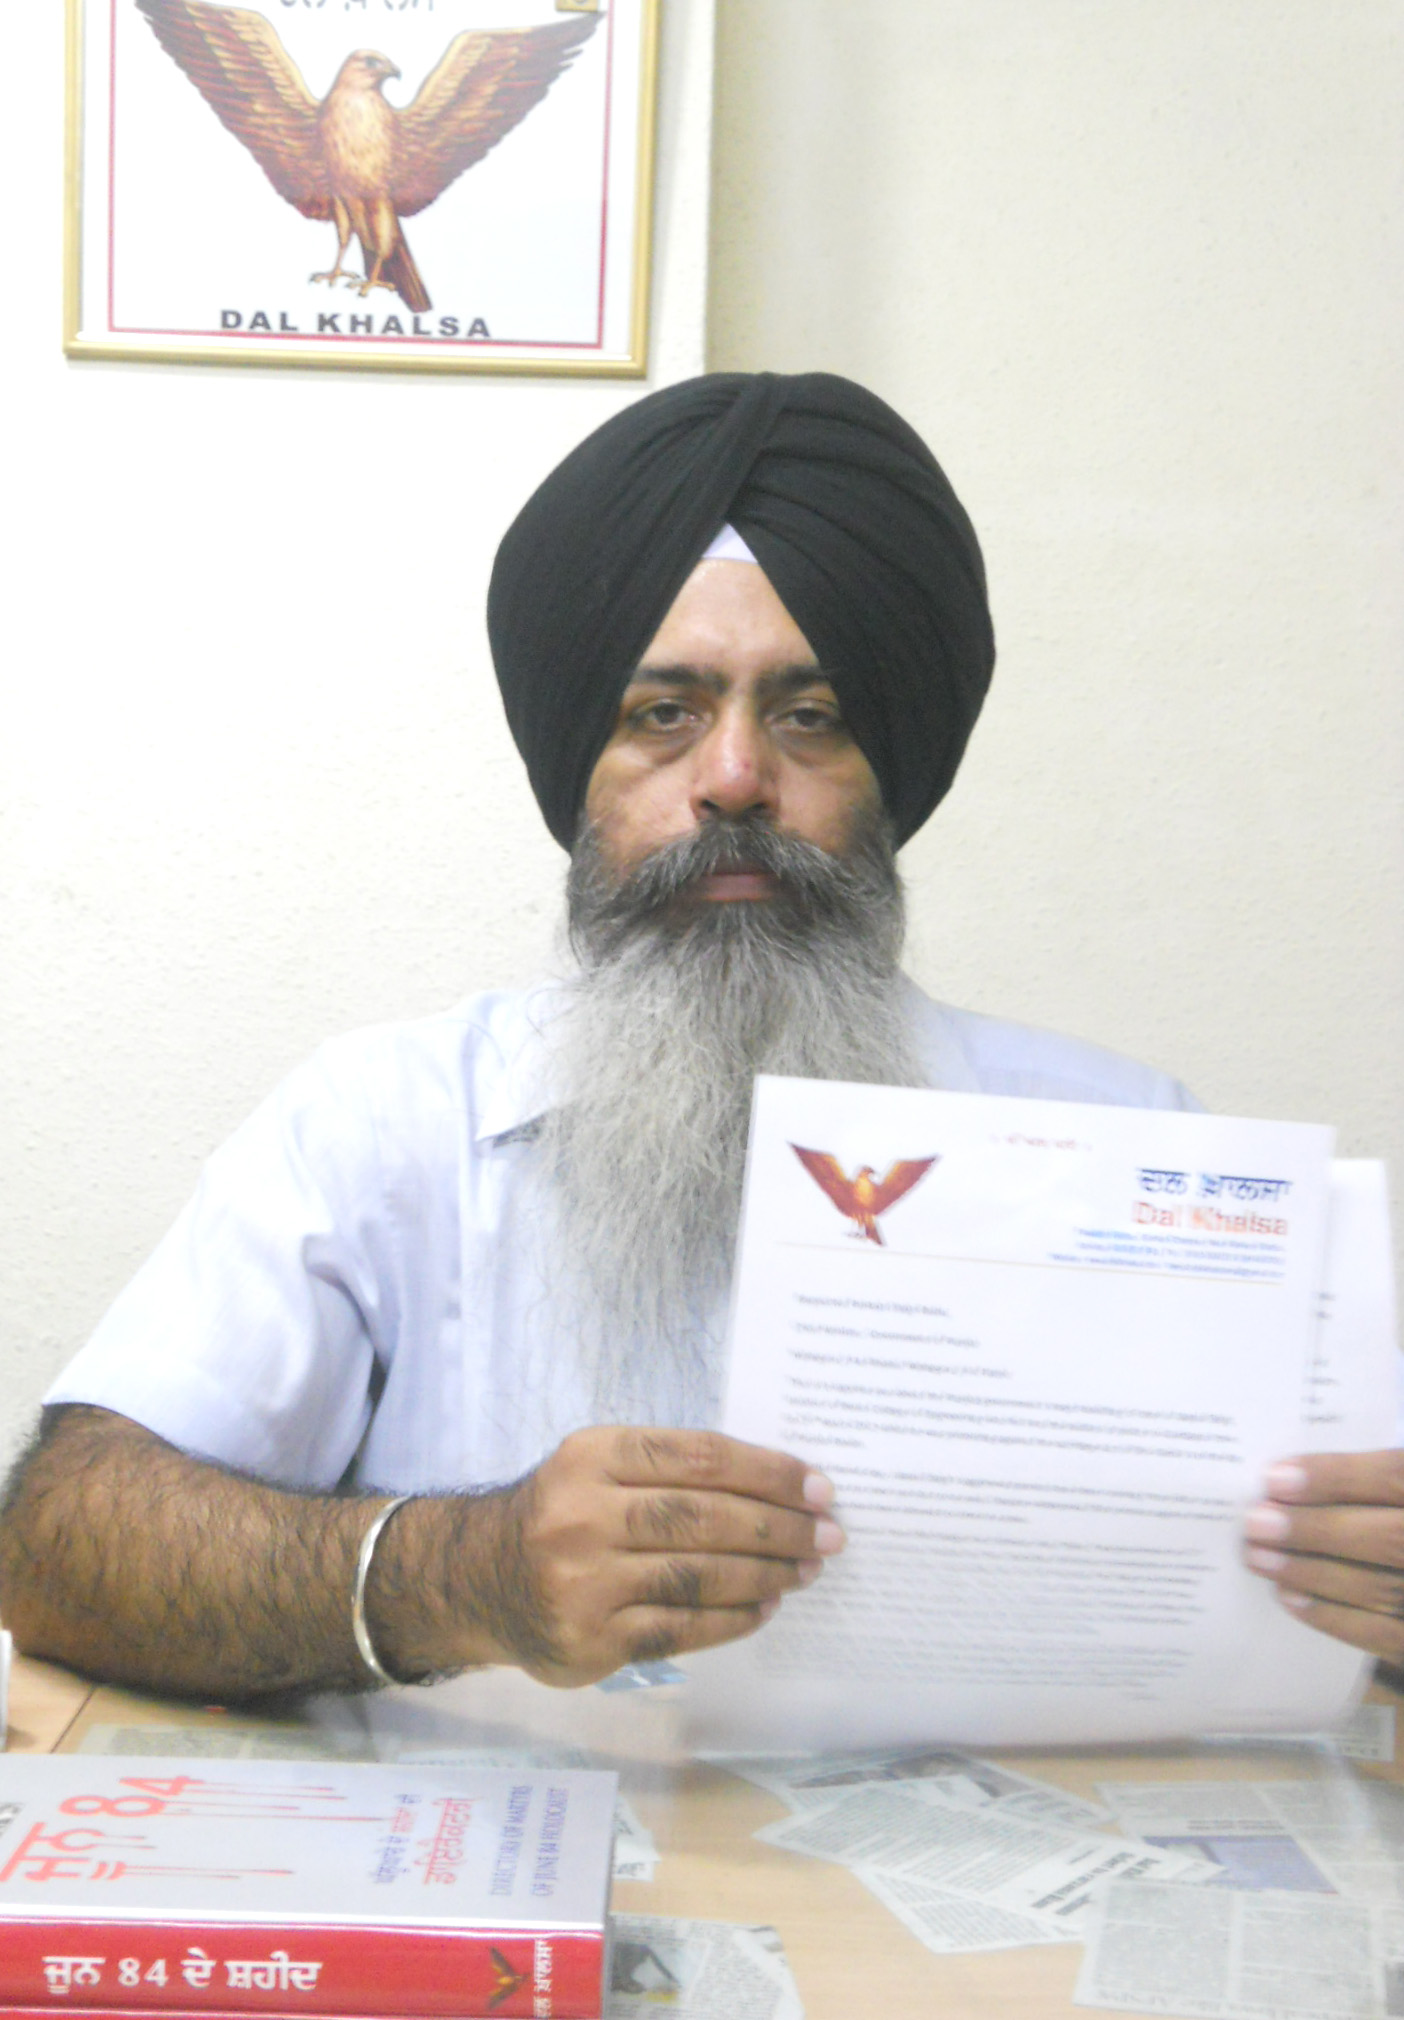 S. Kanwarpal Singh of Dal Khalsa showing letter sent to Punjab CM